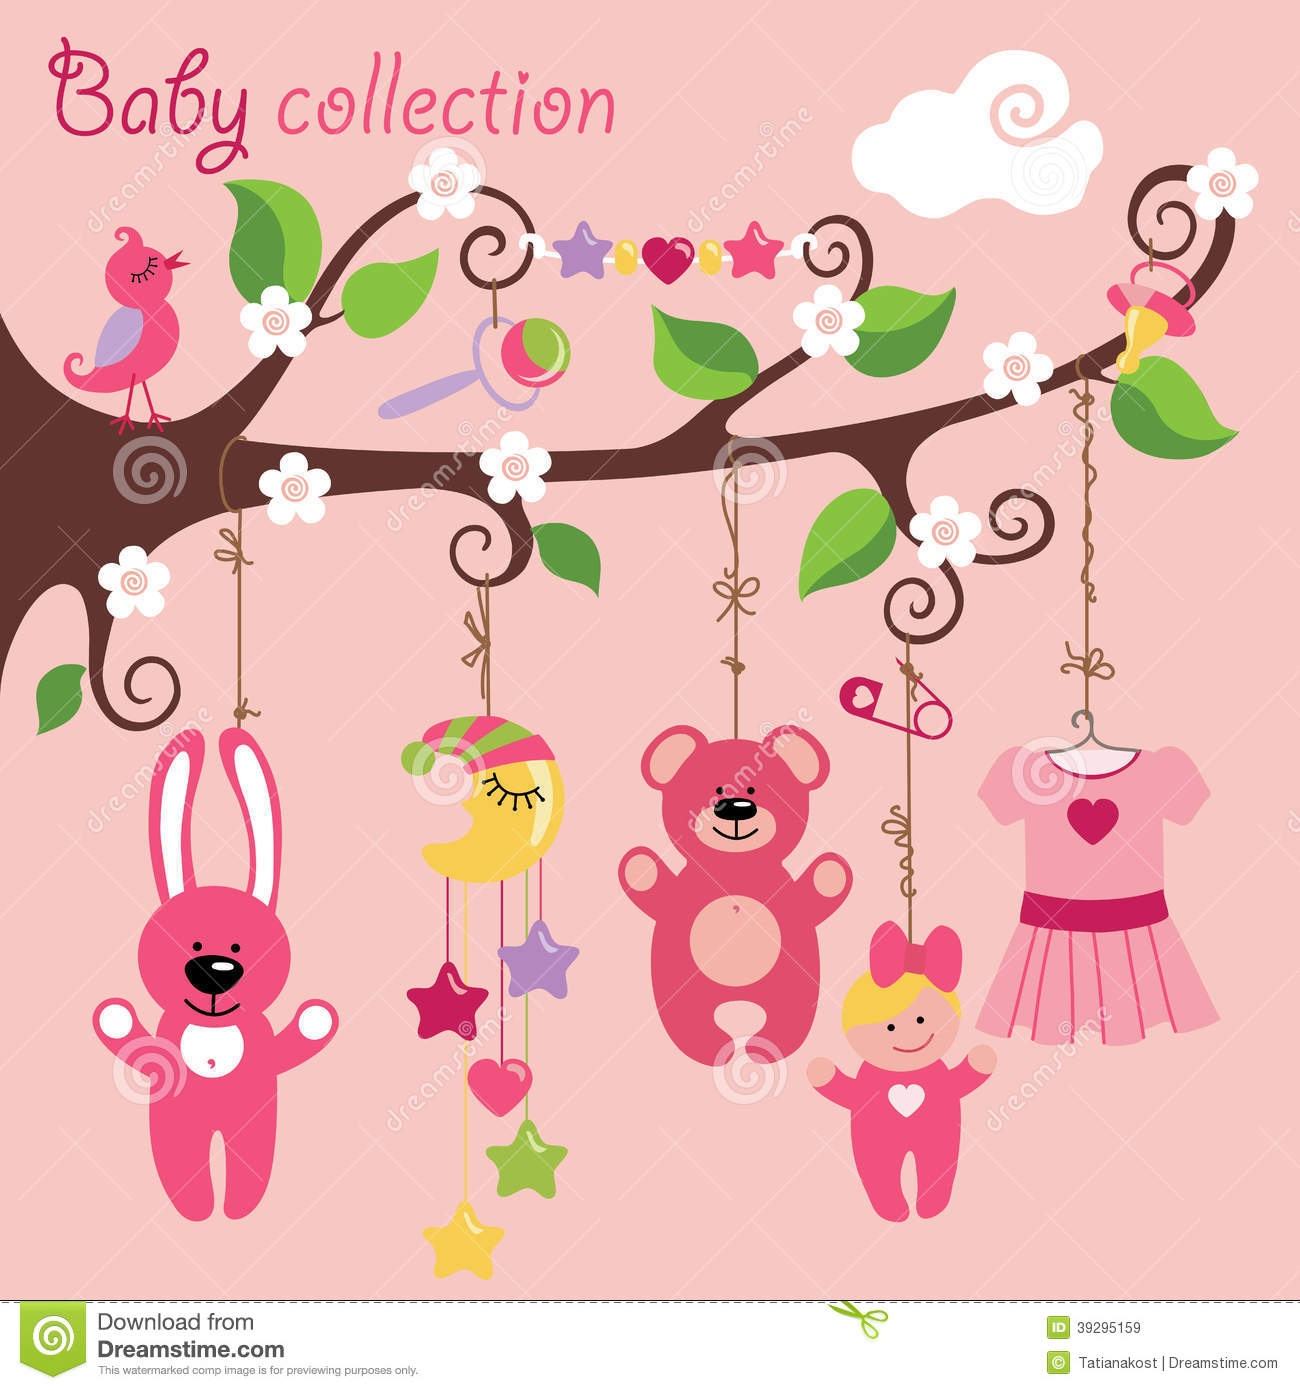 in the tree branches.Cartoon Baby collection. A bib, dress,Teddy-bear ...